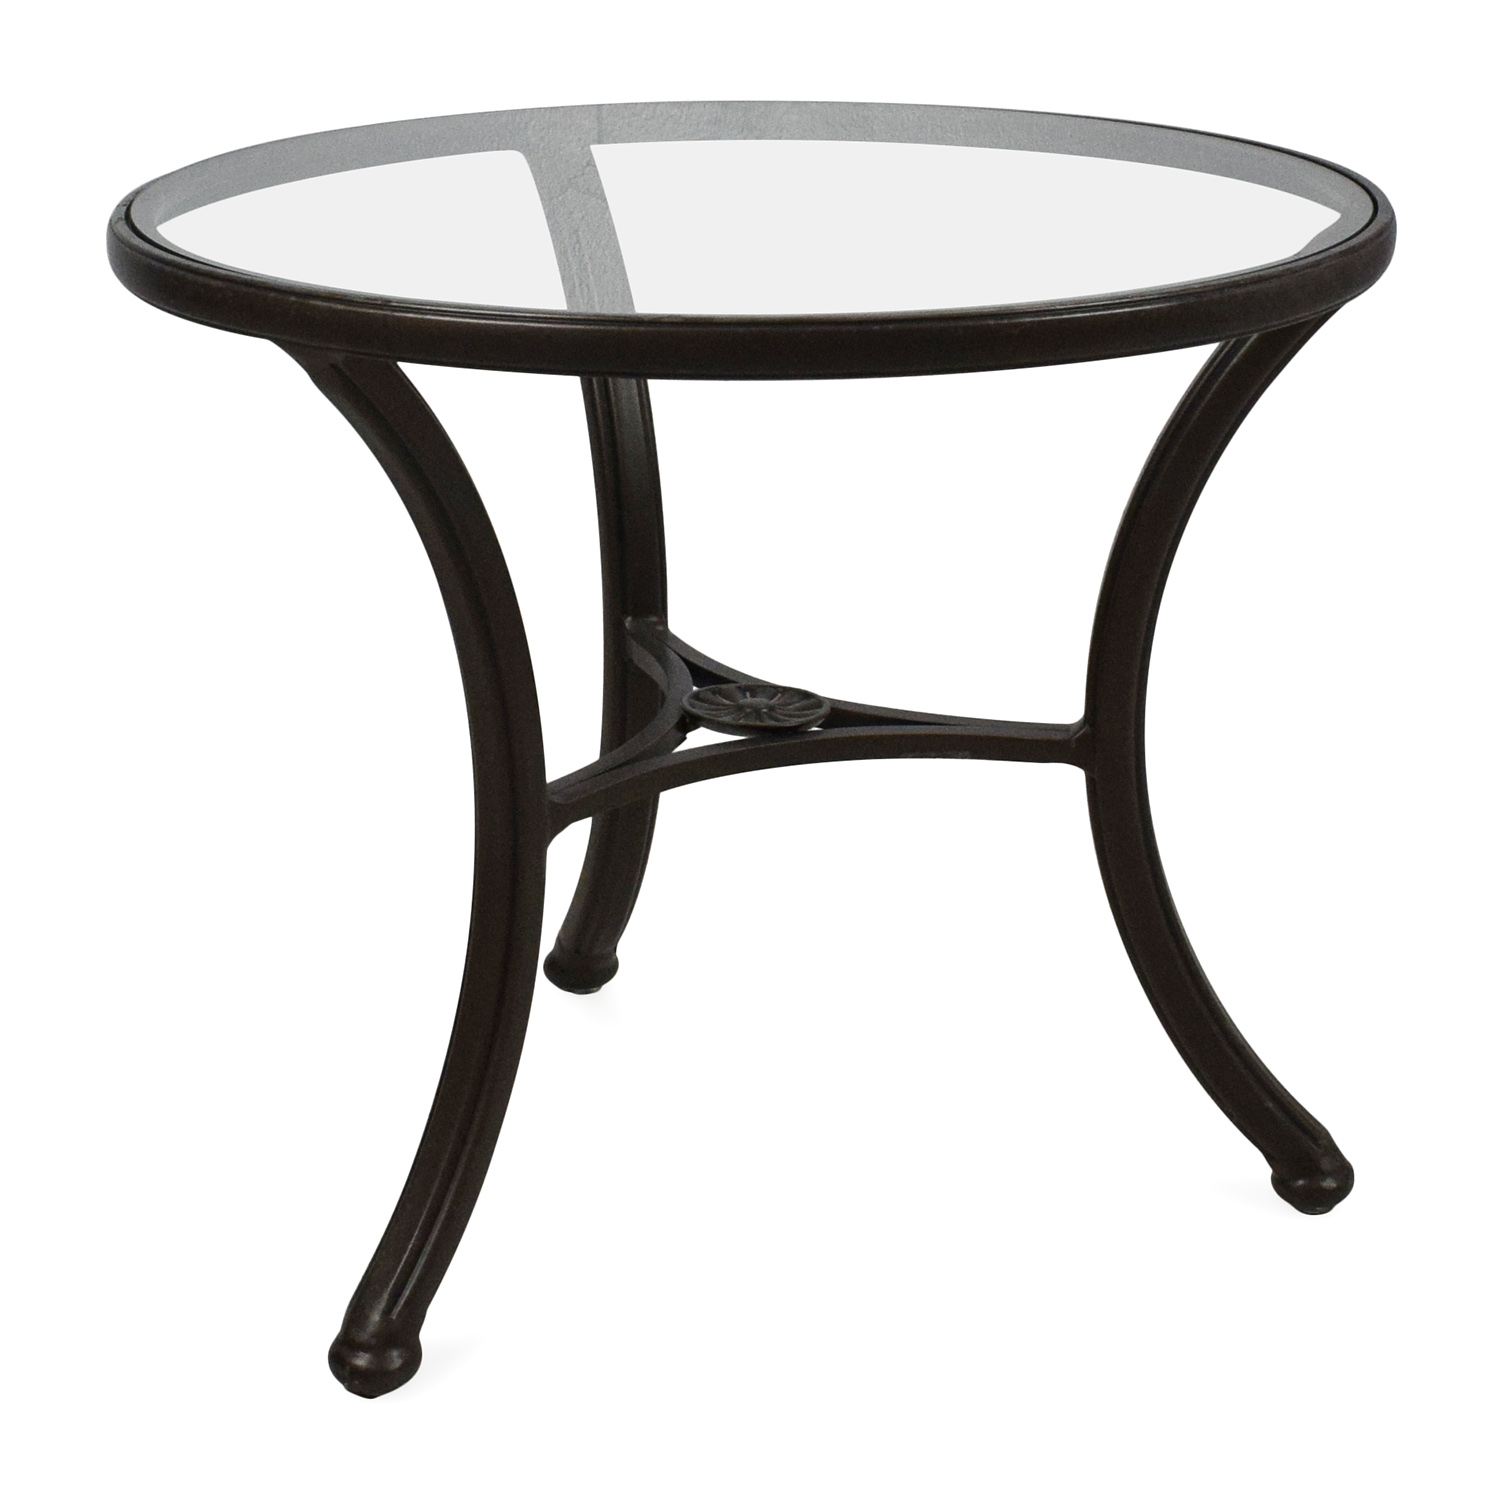 83 off ethan allen ethan allen glass side table tables